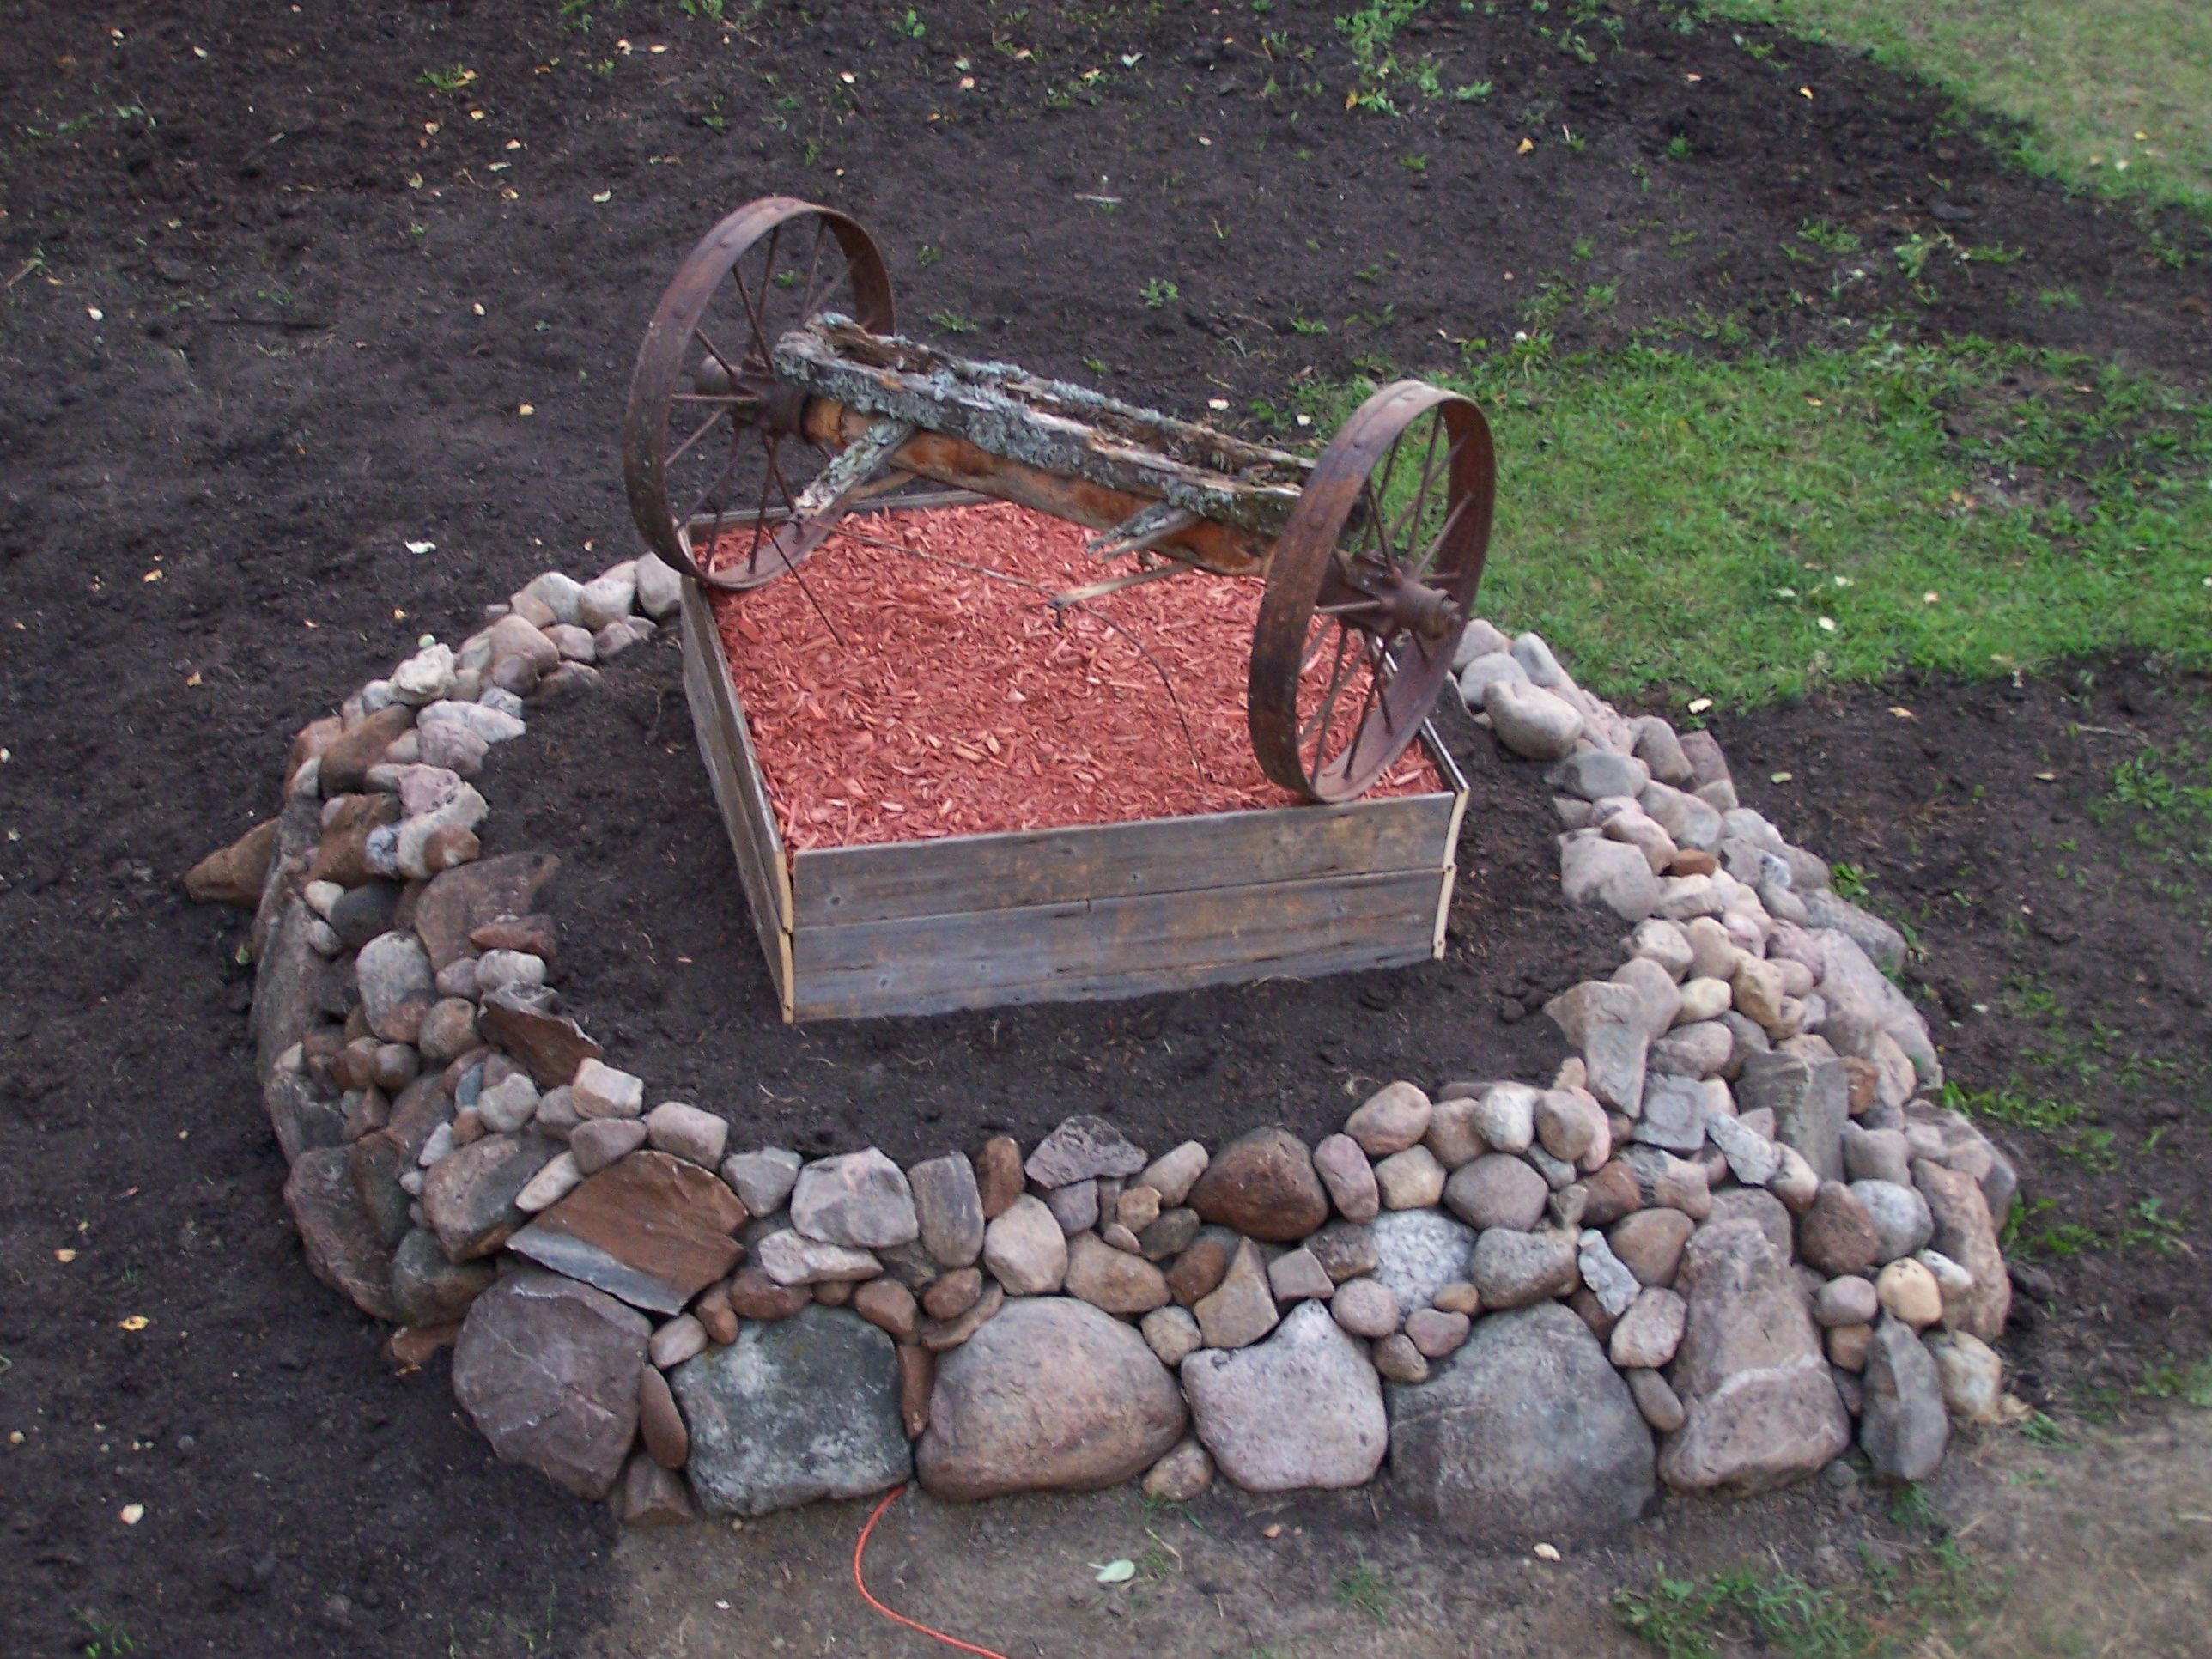 garden ideas old steel wagon wheel axle and rock surrounding flower bed covering up septic tank lid